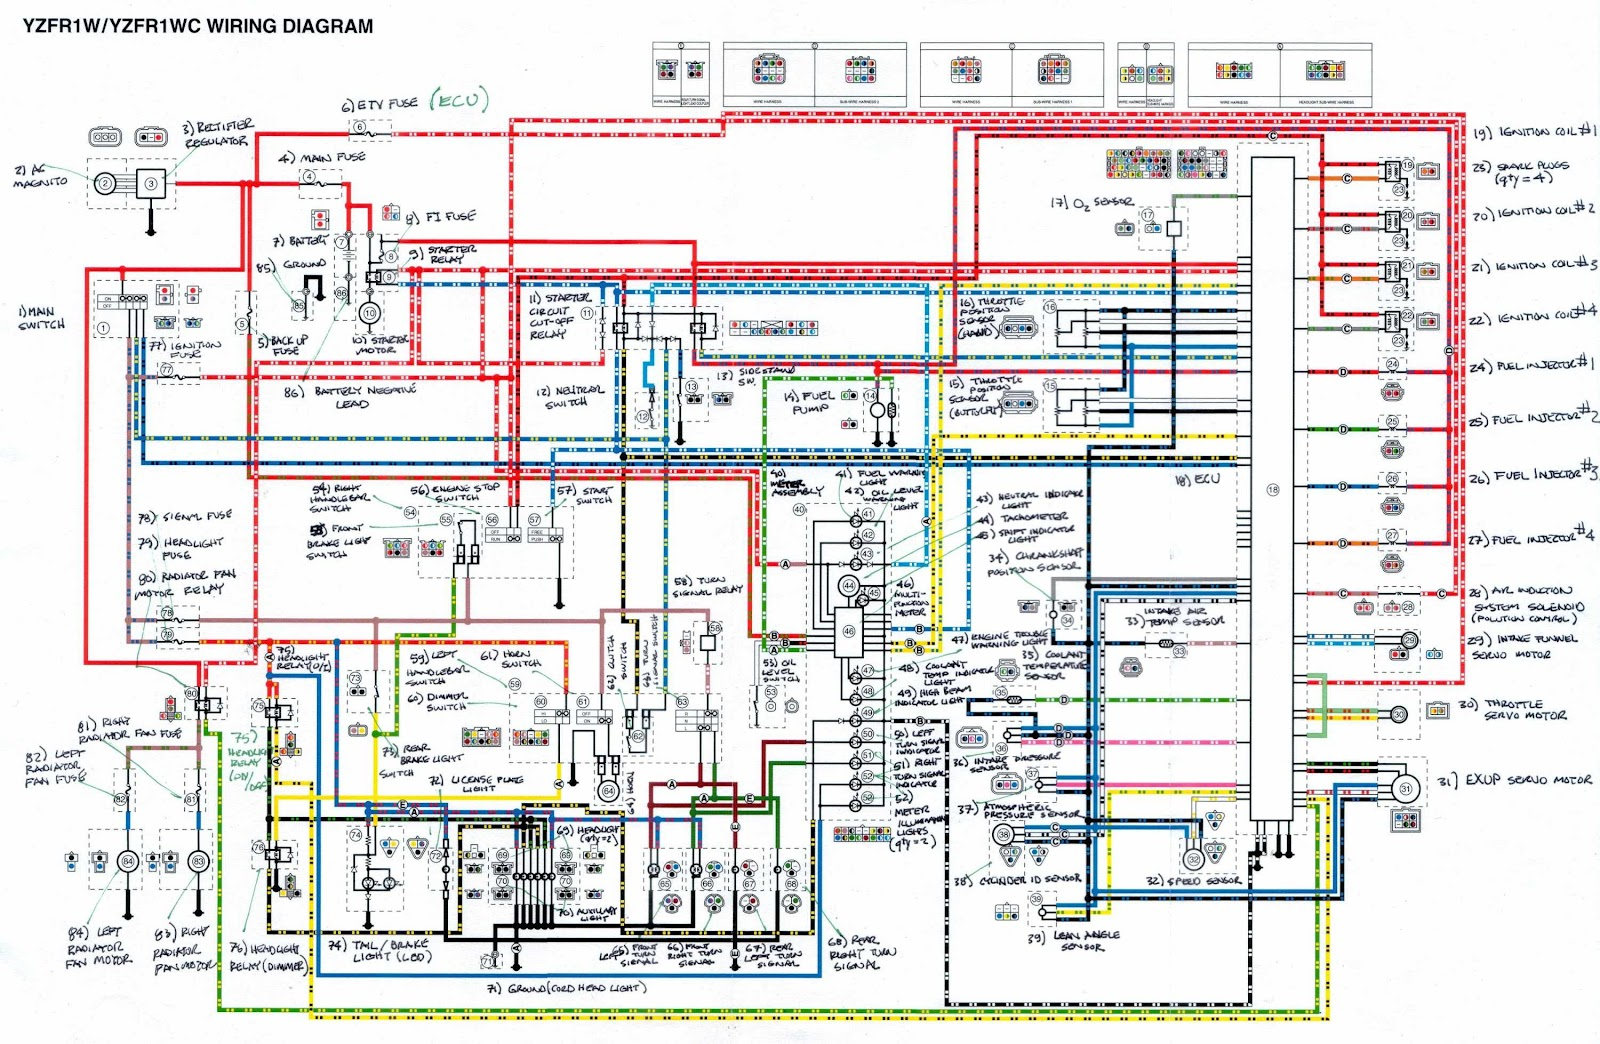 small resolution of 2001 yamaha yzf r1 wiring diagram 2006 yamaha yzf r1 wiring diagram